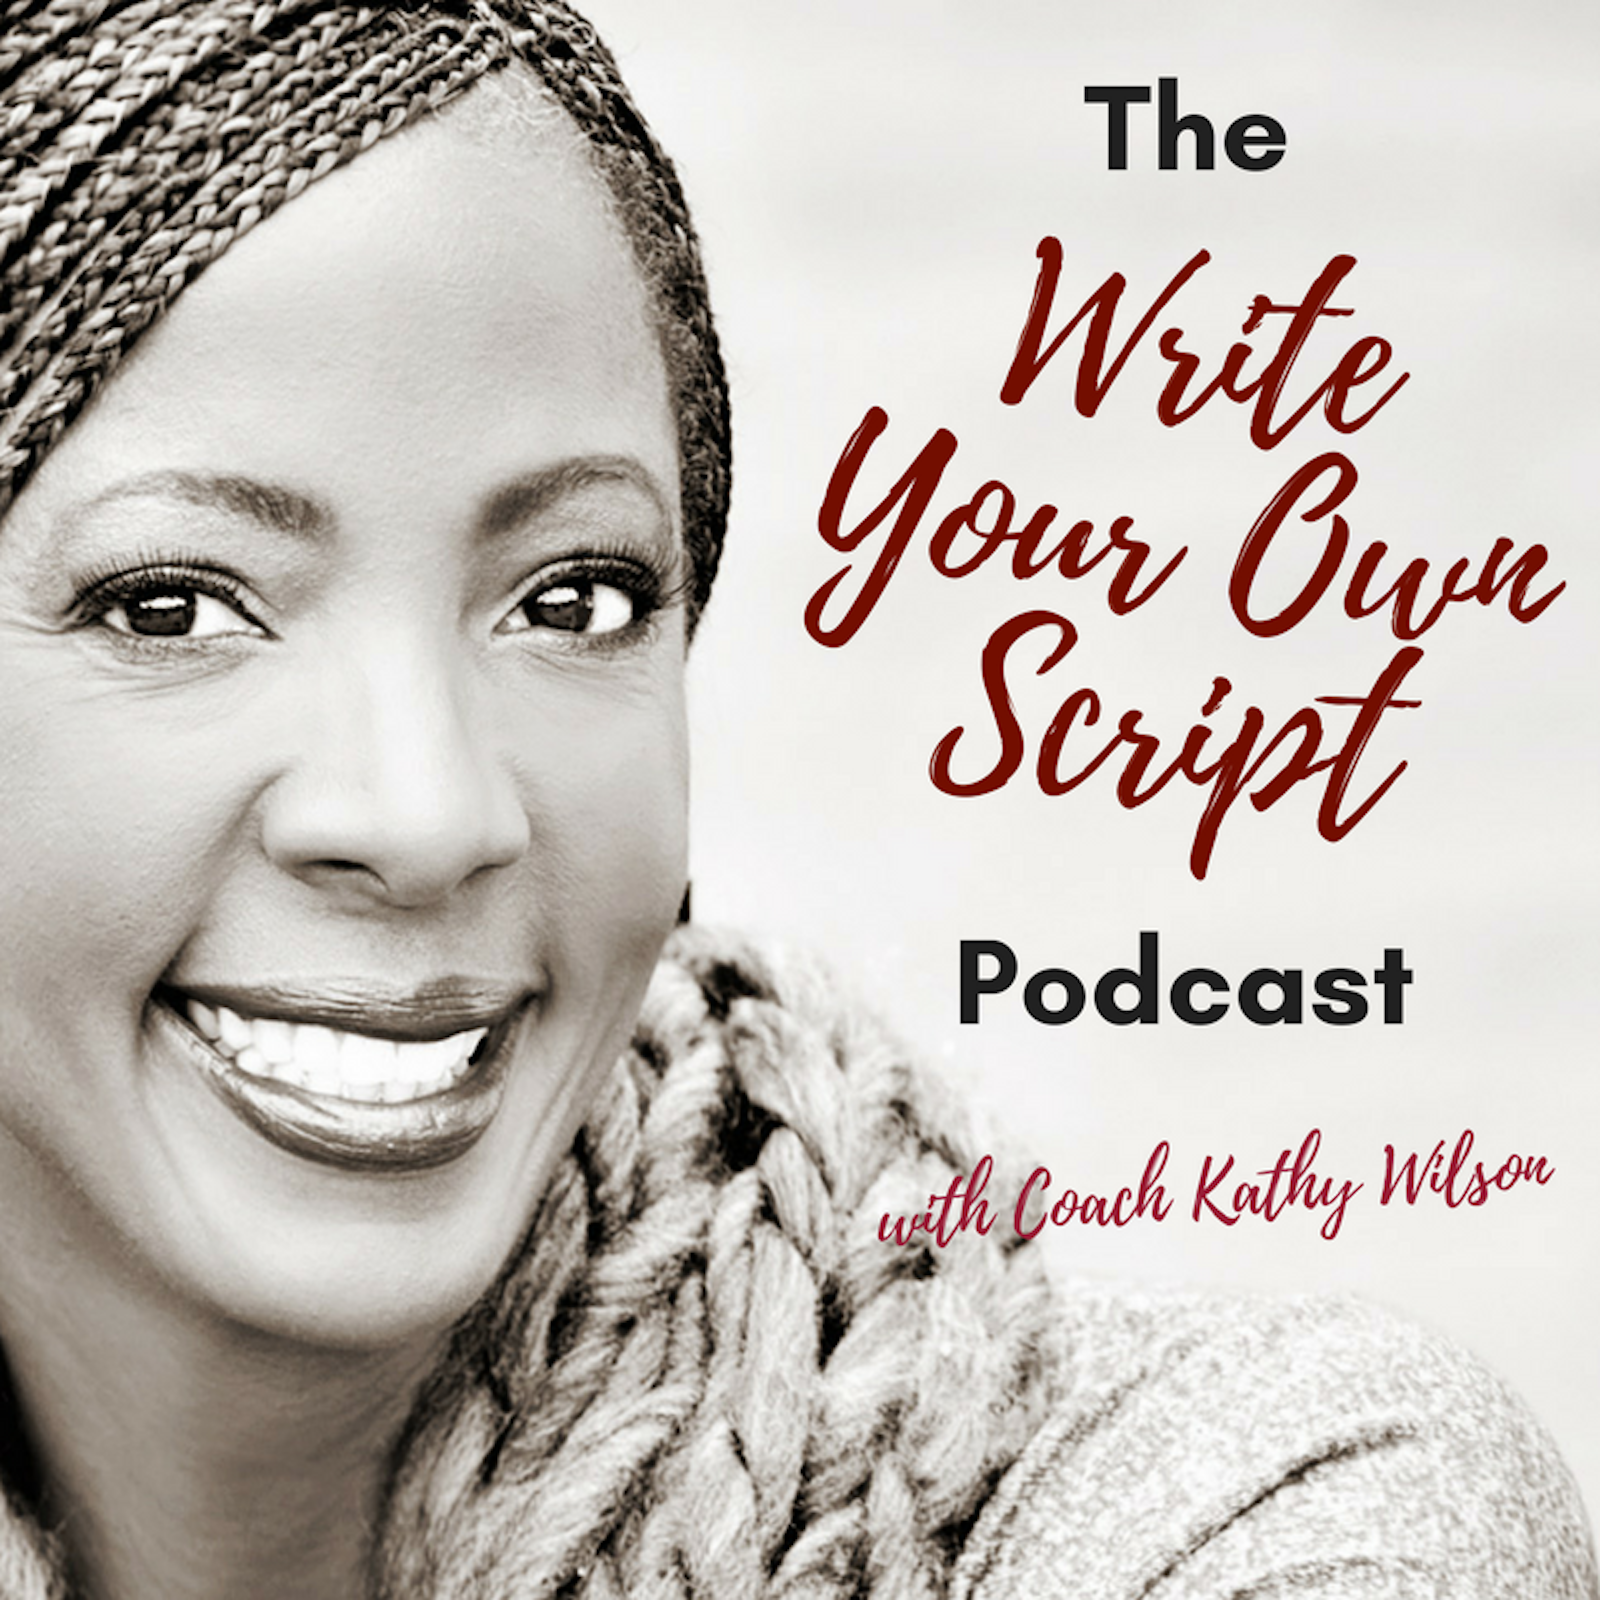 Write Your Own Script!